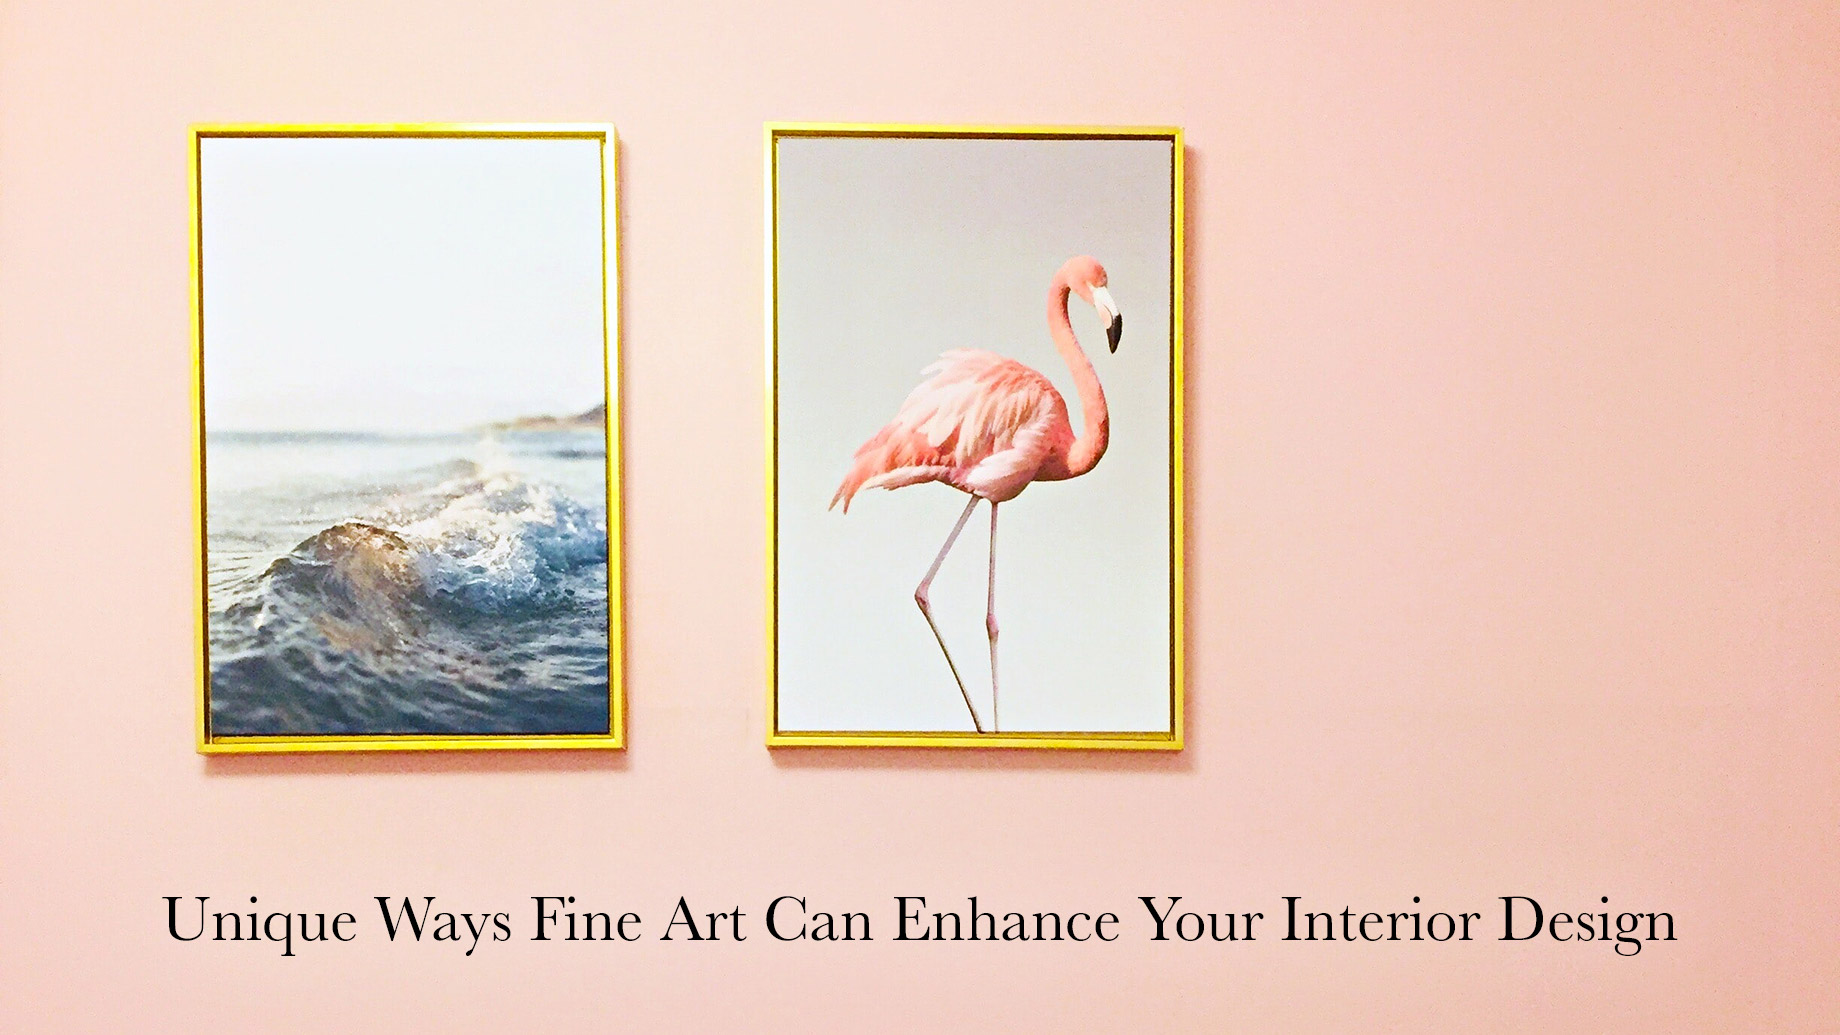 Unique Ways Fine Art Can Enhance Your Interior Design